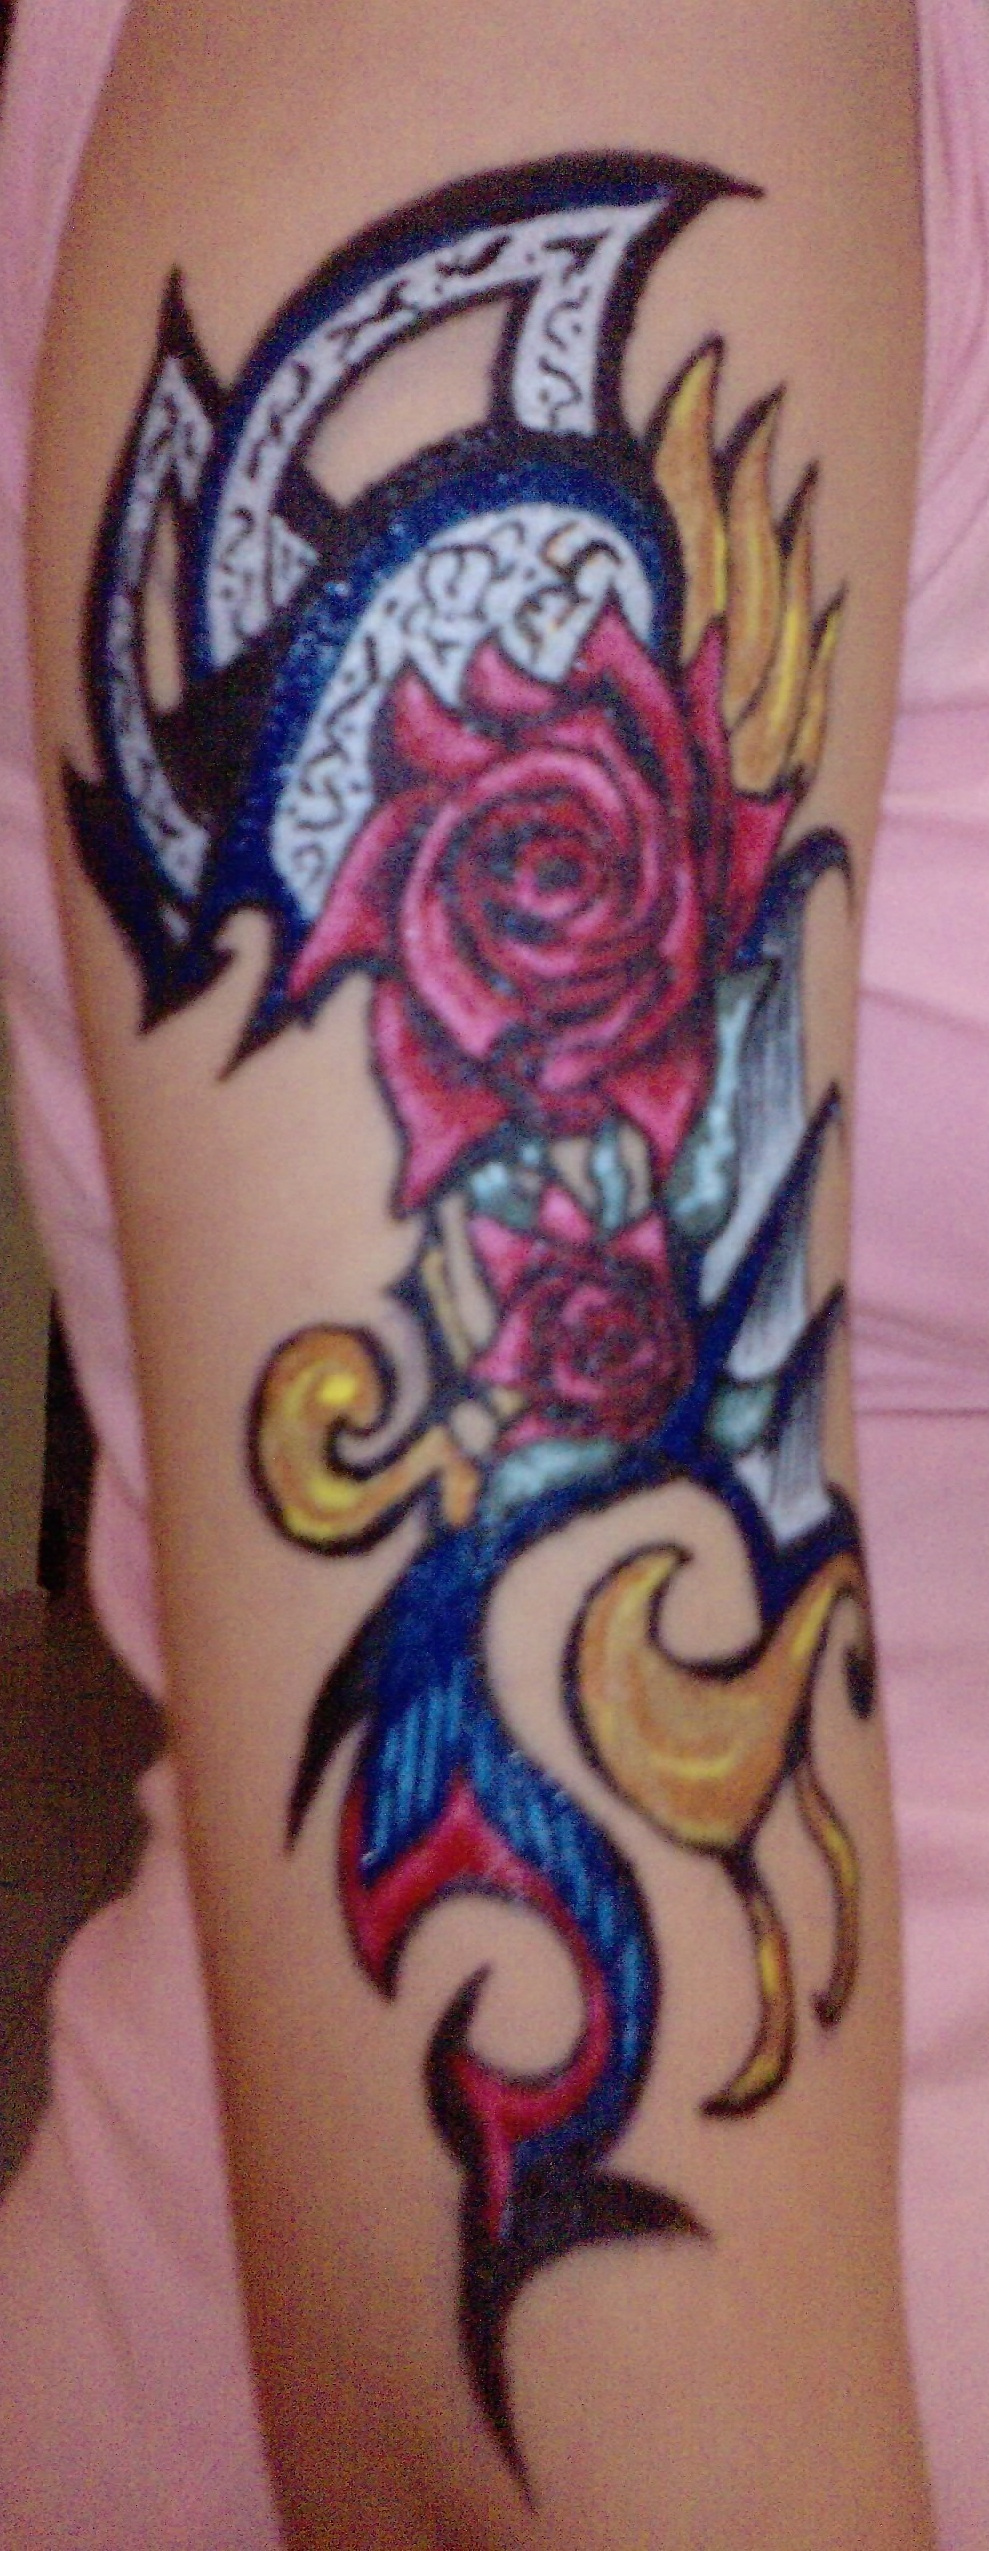 rose - Tattoos Photo (16001821) - Fanpop fanclubs!